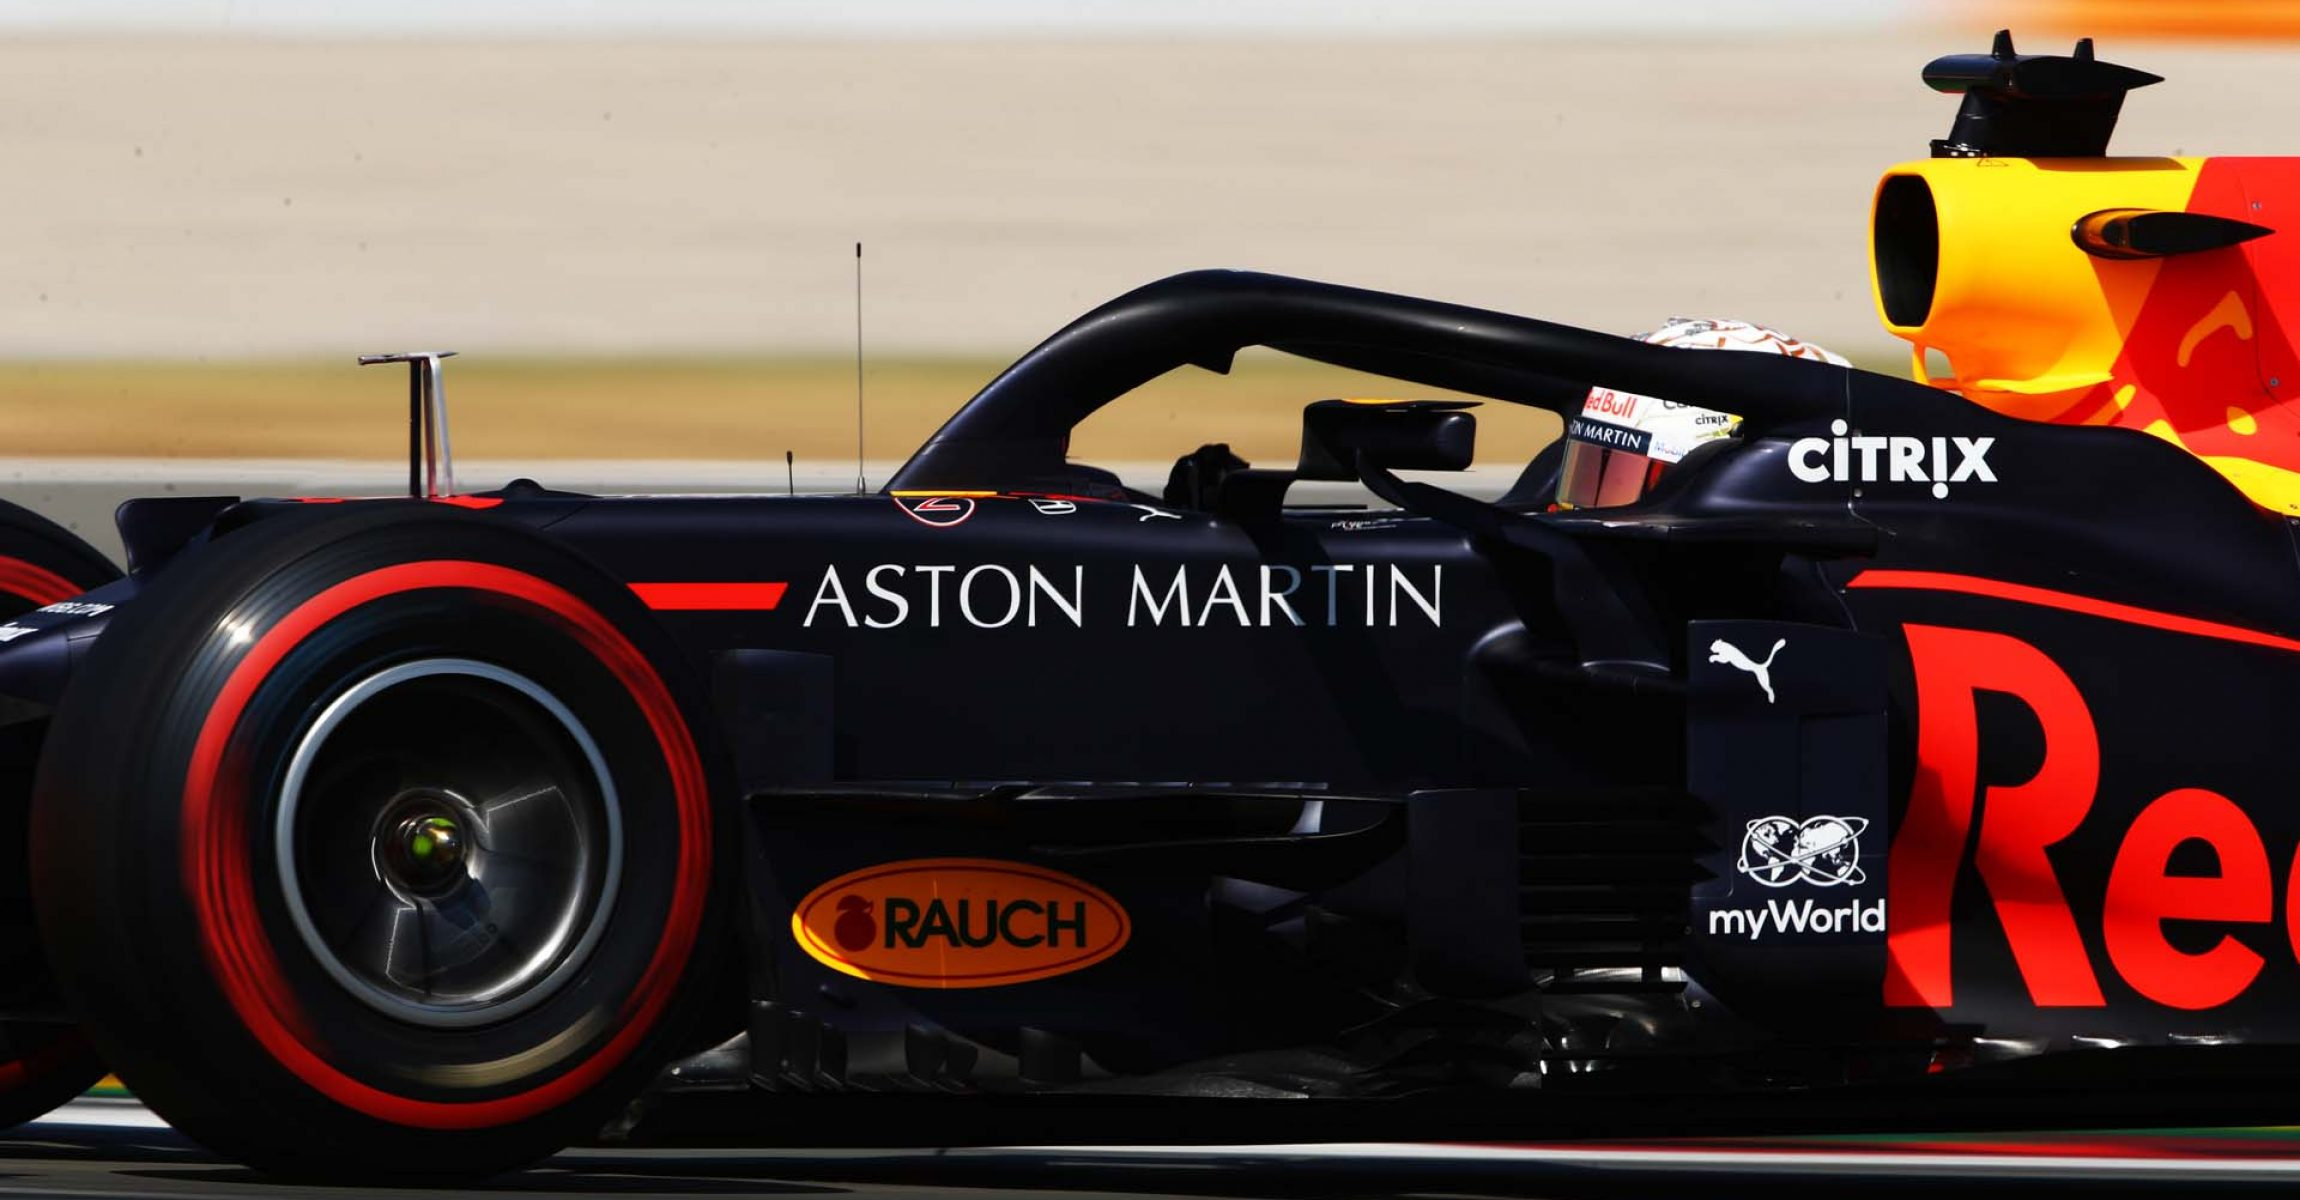 BARCELONA, SPAIN - AUGUST 14: Max Verstappen of the Netherlands driving the (33) Aston Martin Red Bull Racing RB16 on track during practice for the F1 Grand Prix of Spain at Circuit de Barcelona-Catalunya on August 14, 2020 in Barcelona, Spain. (Photo by Bryn Lennon/Getty Images)